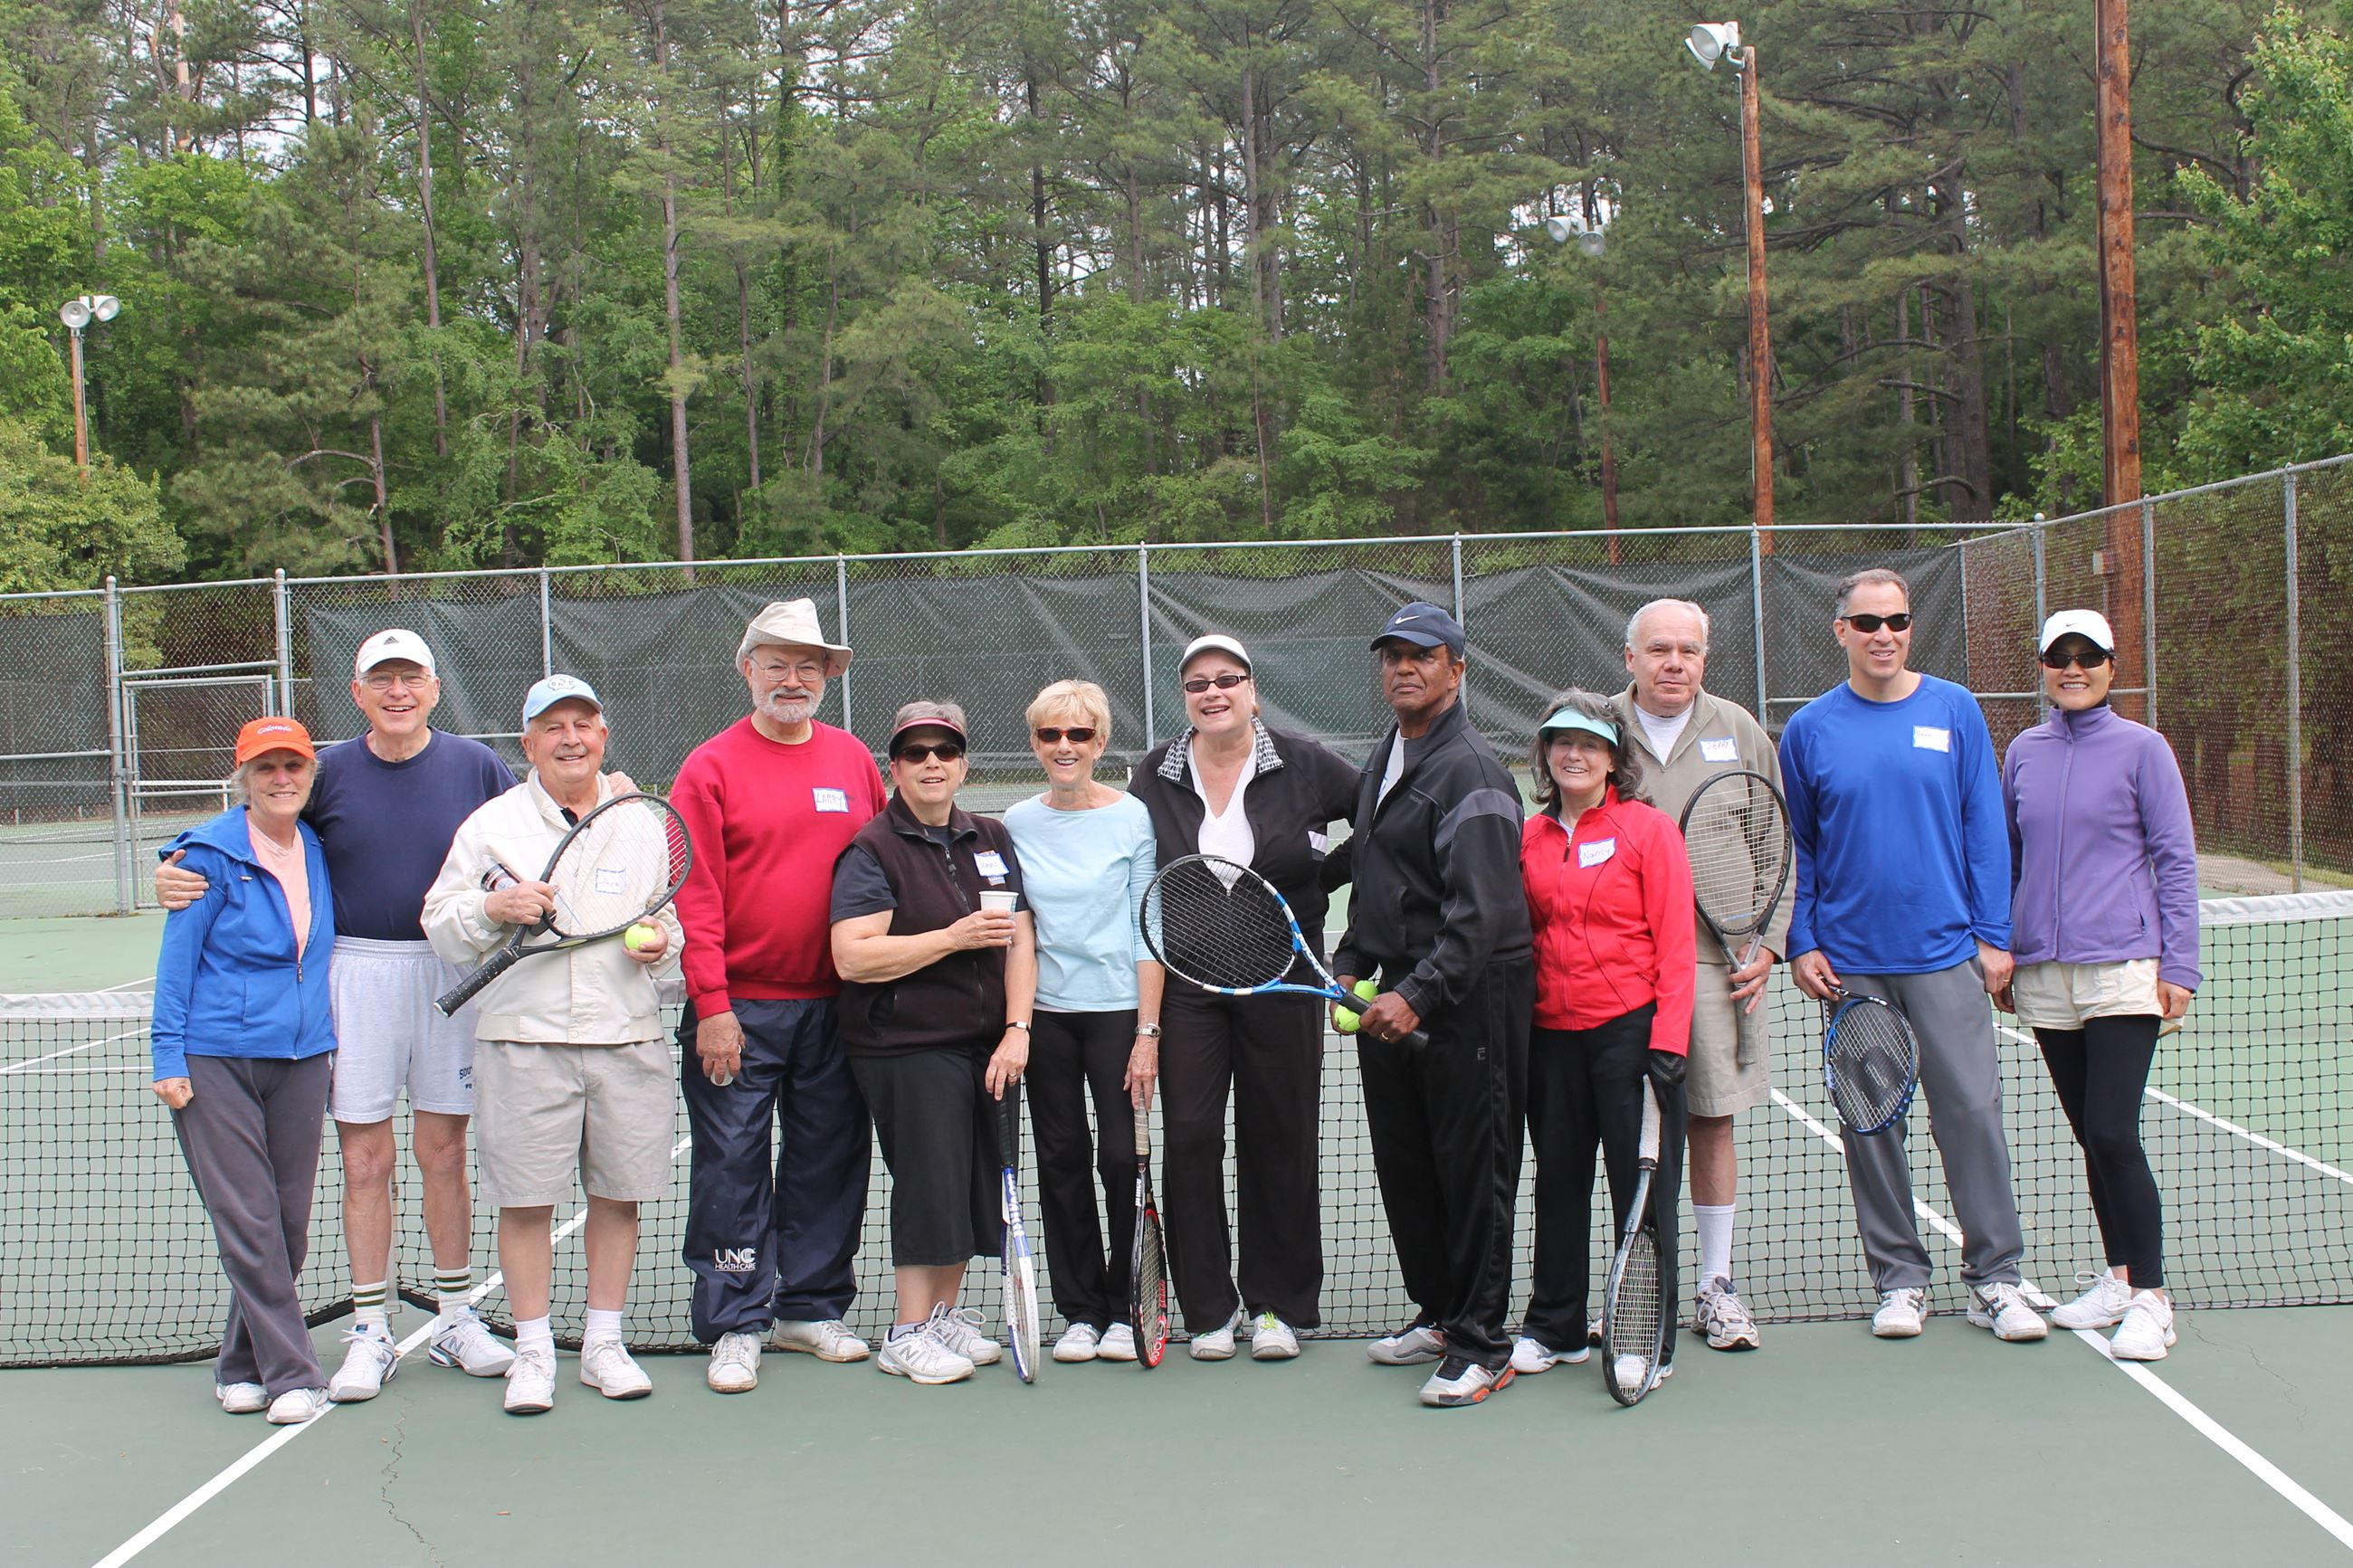 Senior Tennis Day